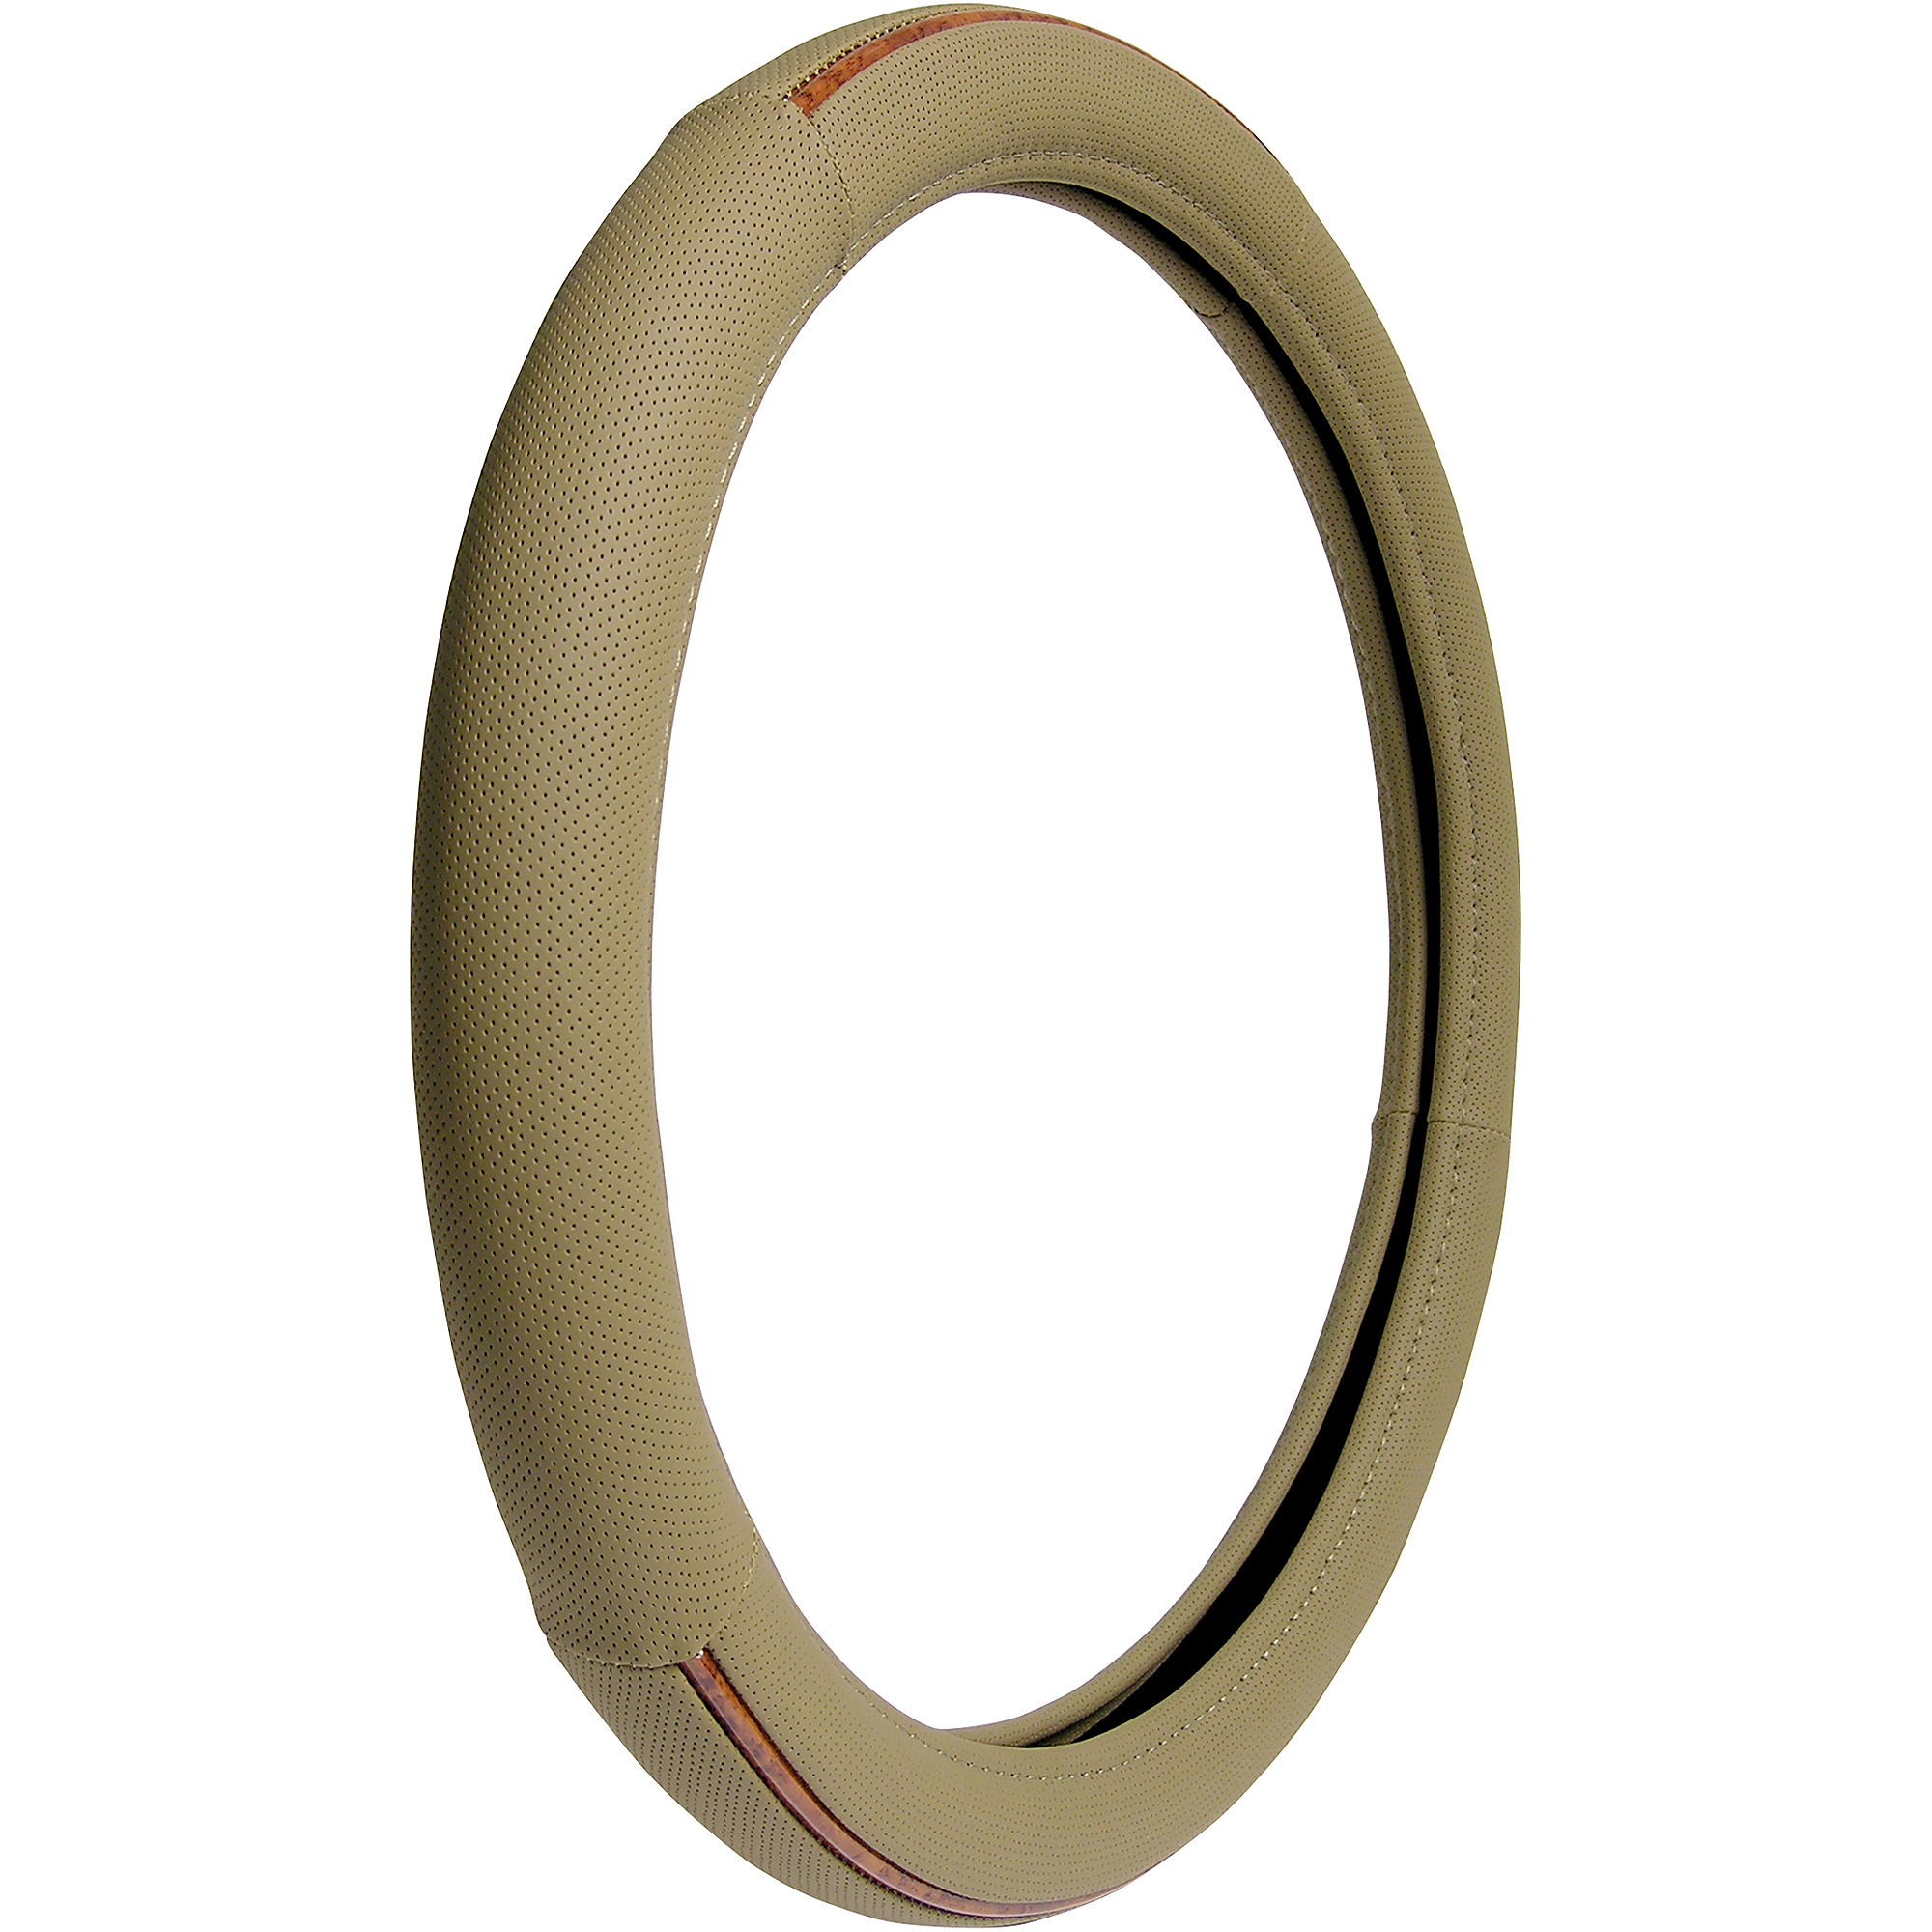 Auto Drive Steering Wheel Cover, Tan/Burlwood